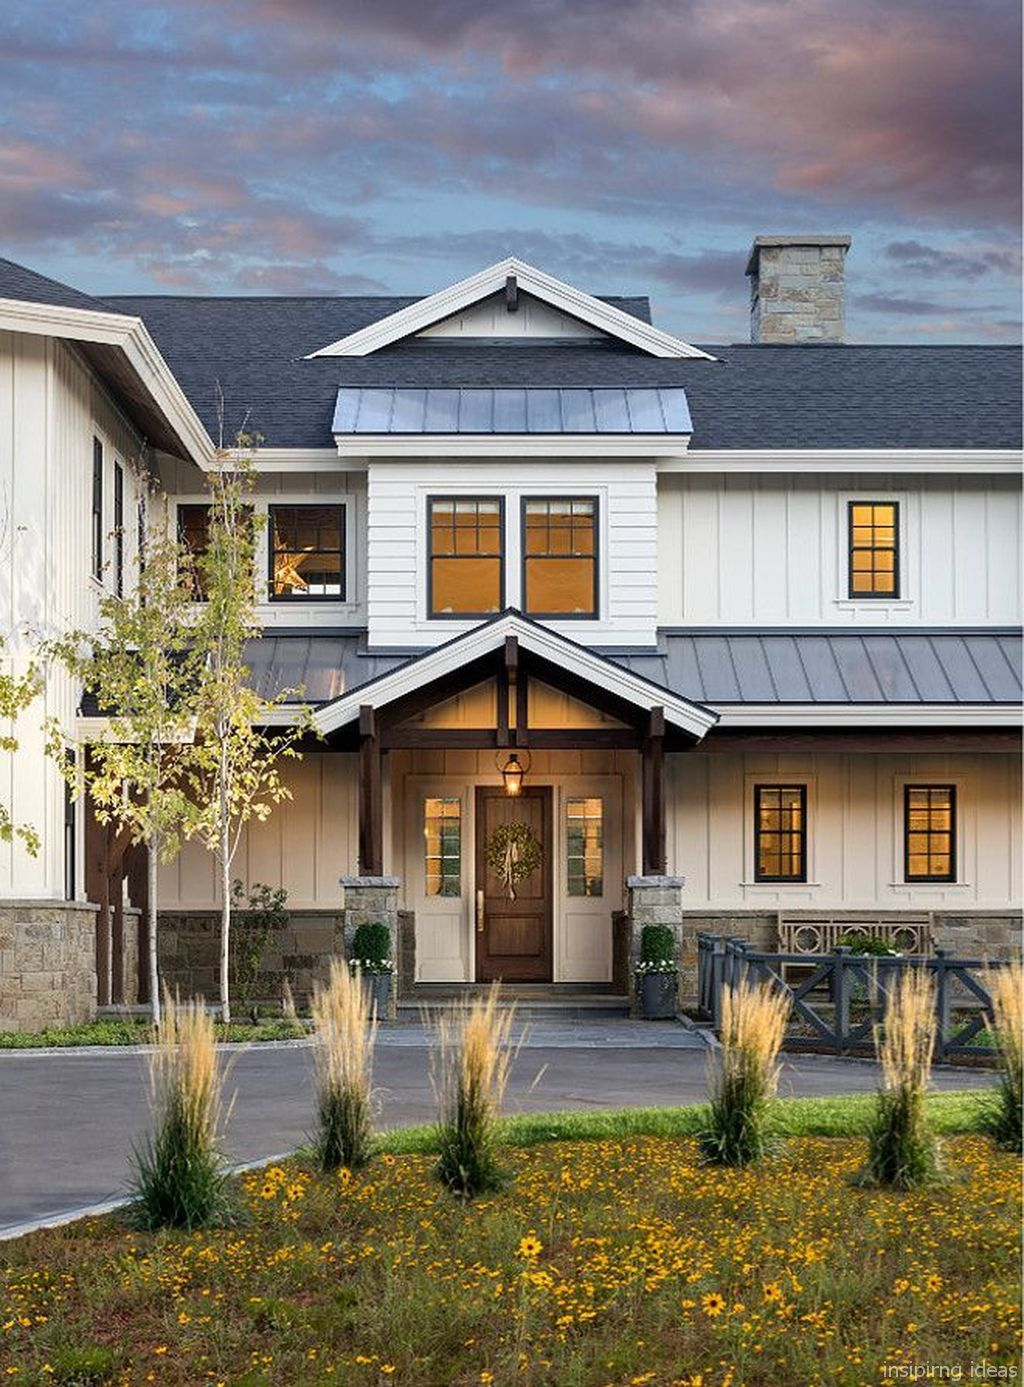 27 Modern Farmhouse Exterior Design Ideas For Stylish But Simple Look: 95 99 Modern Farmhouse Exterior Color Schemes Ideas